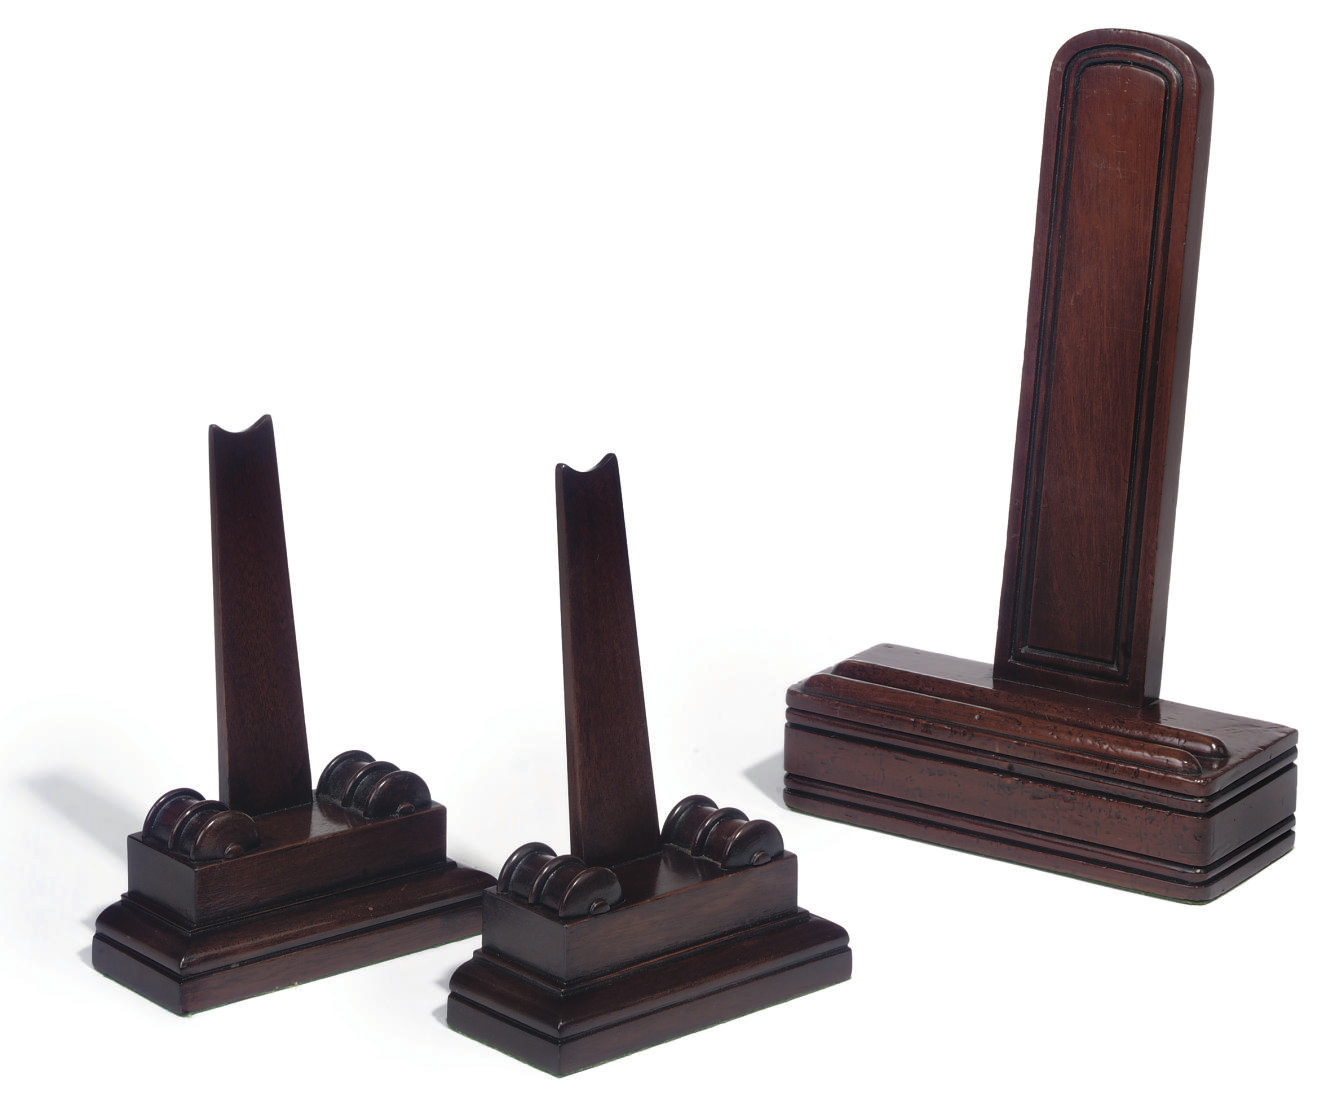 A LATE VICTORIAN MAHOGANY PLATE STAND